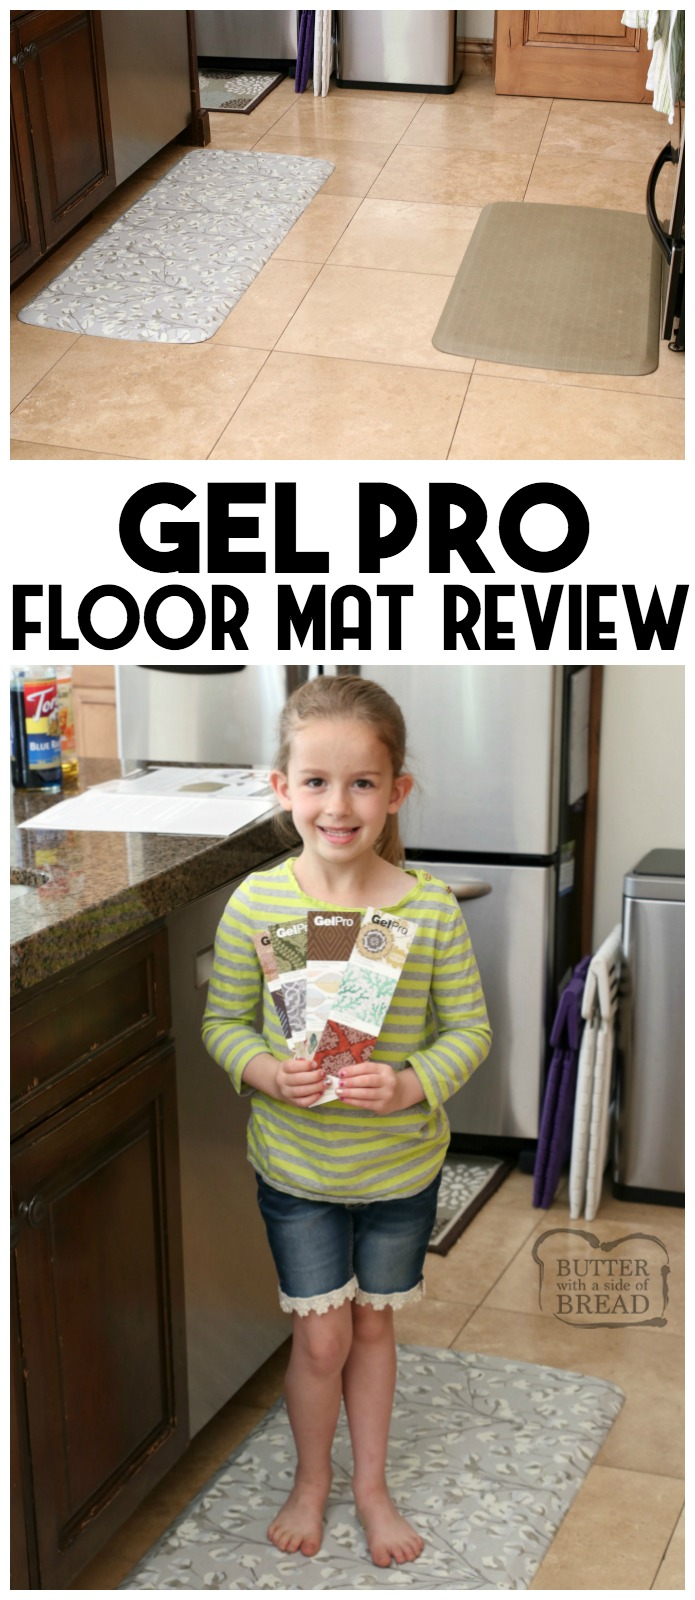 Honest GelPro Elite Floor Mat review, from a busy mom of 5. Why GelPro floor mats are the only and last floor mats you'll ever buy! GelPro floor mats are insanely comfortable, stay-put, durable and so pretty! #GelPro #review #kitchen #floor #floormat